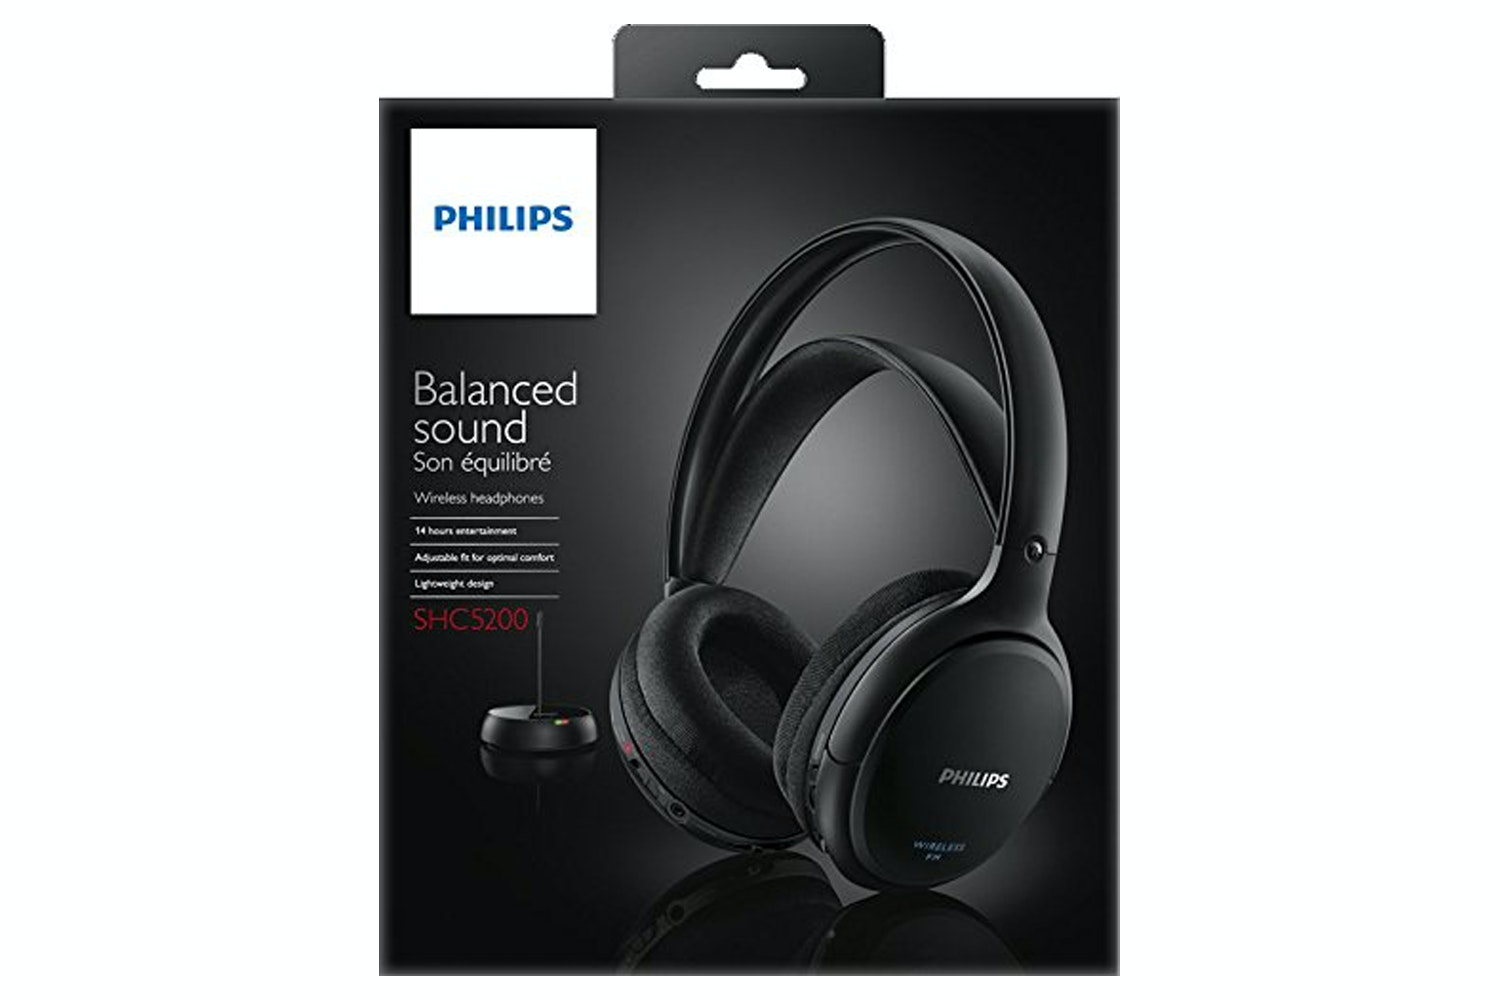 Philips Wireless Headphones | SHC5200/05